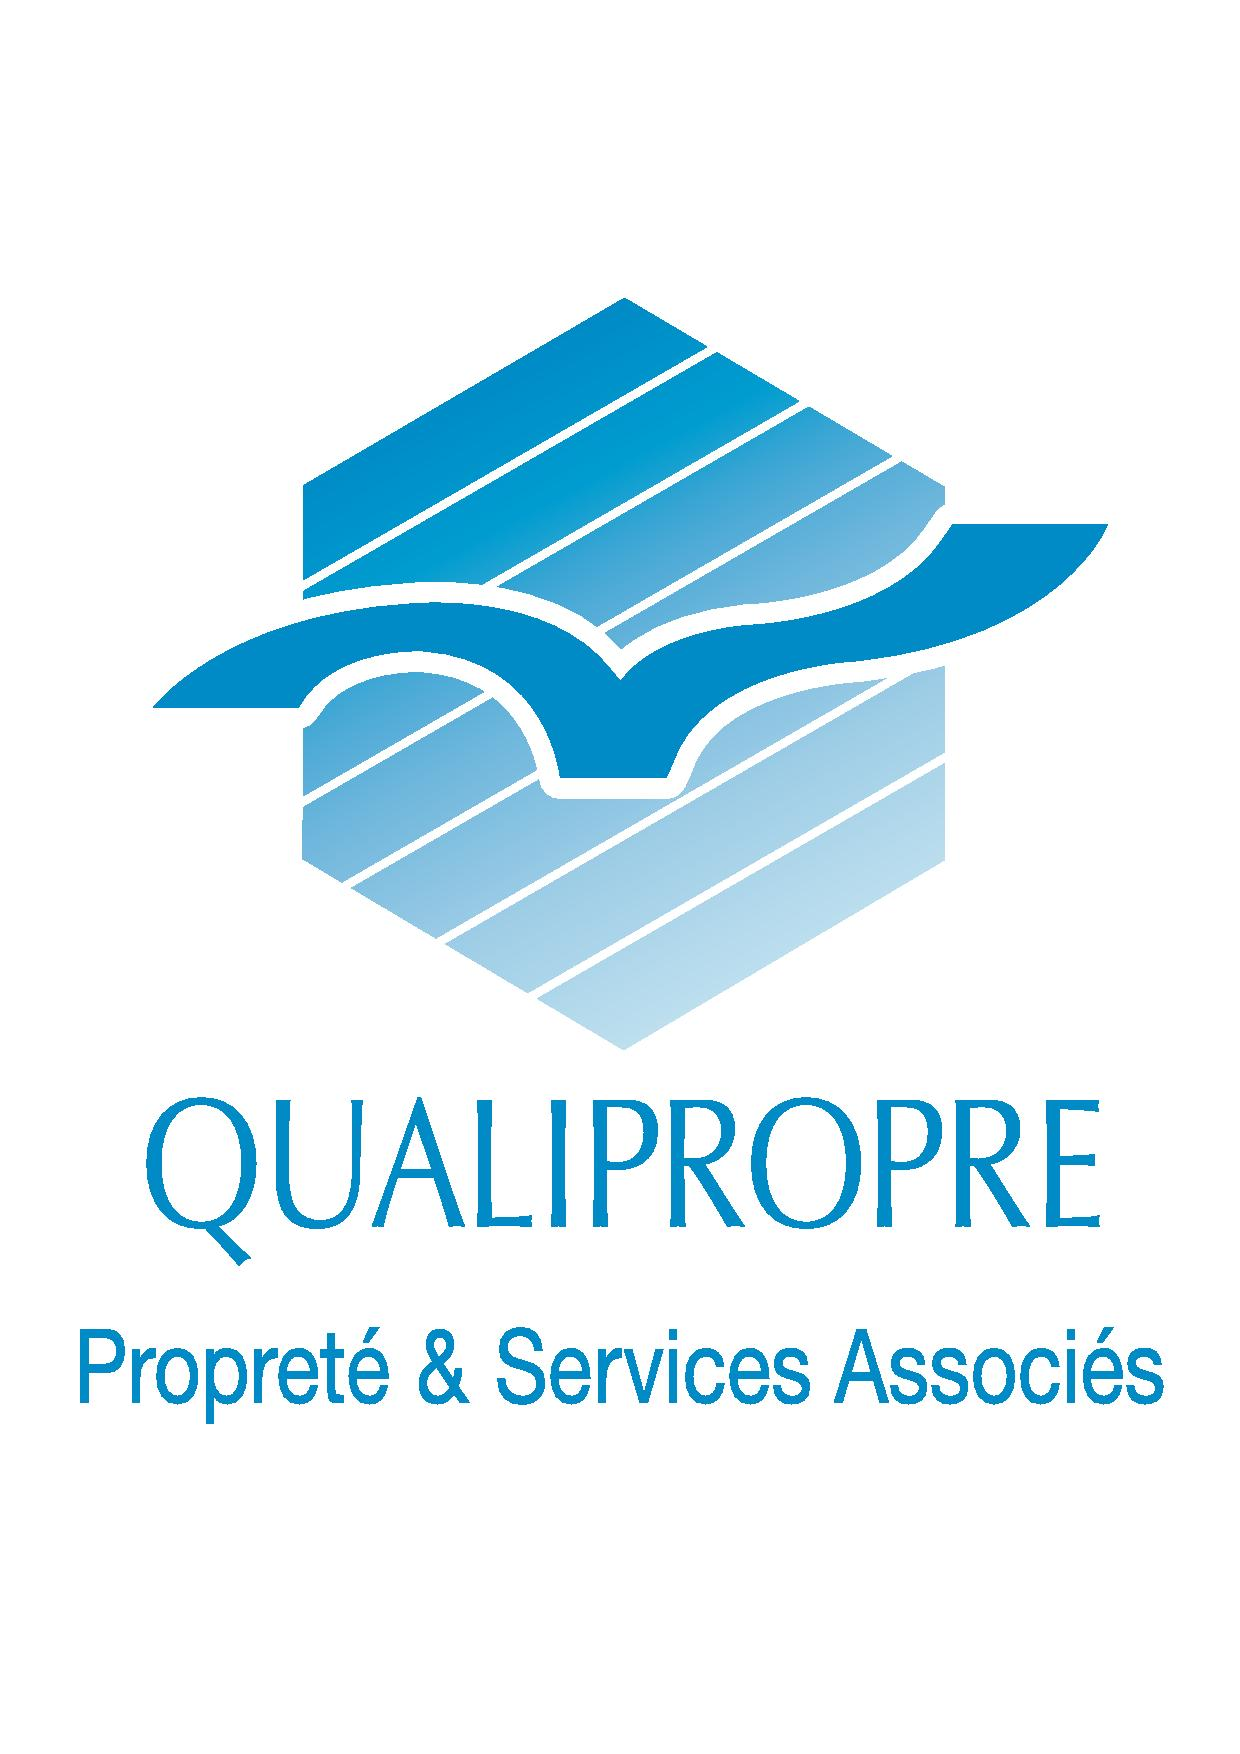 LOGO QUALIPROPRE+BL (3)